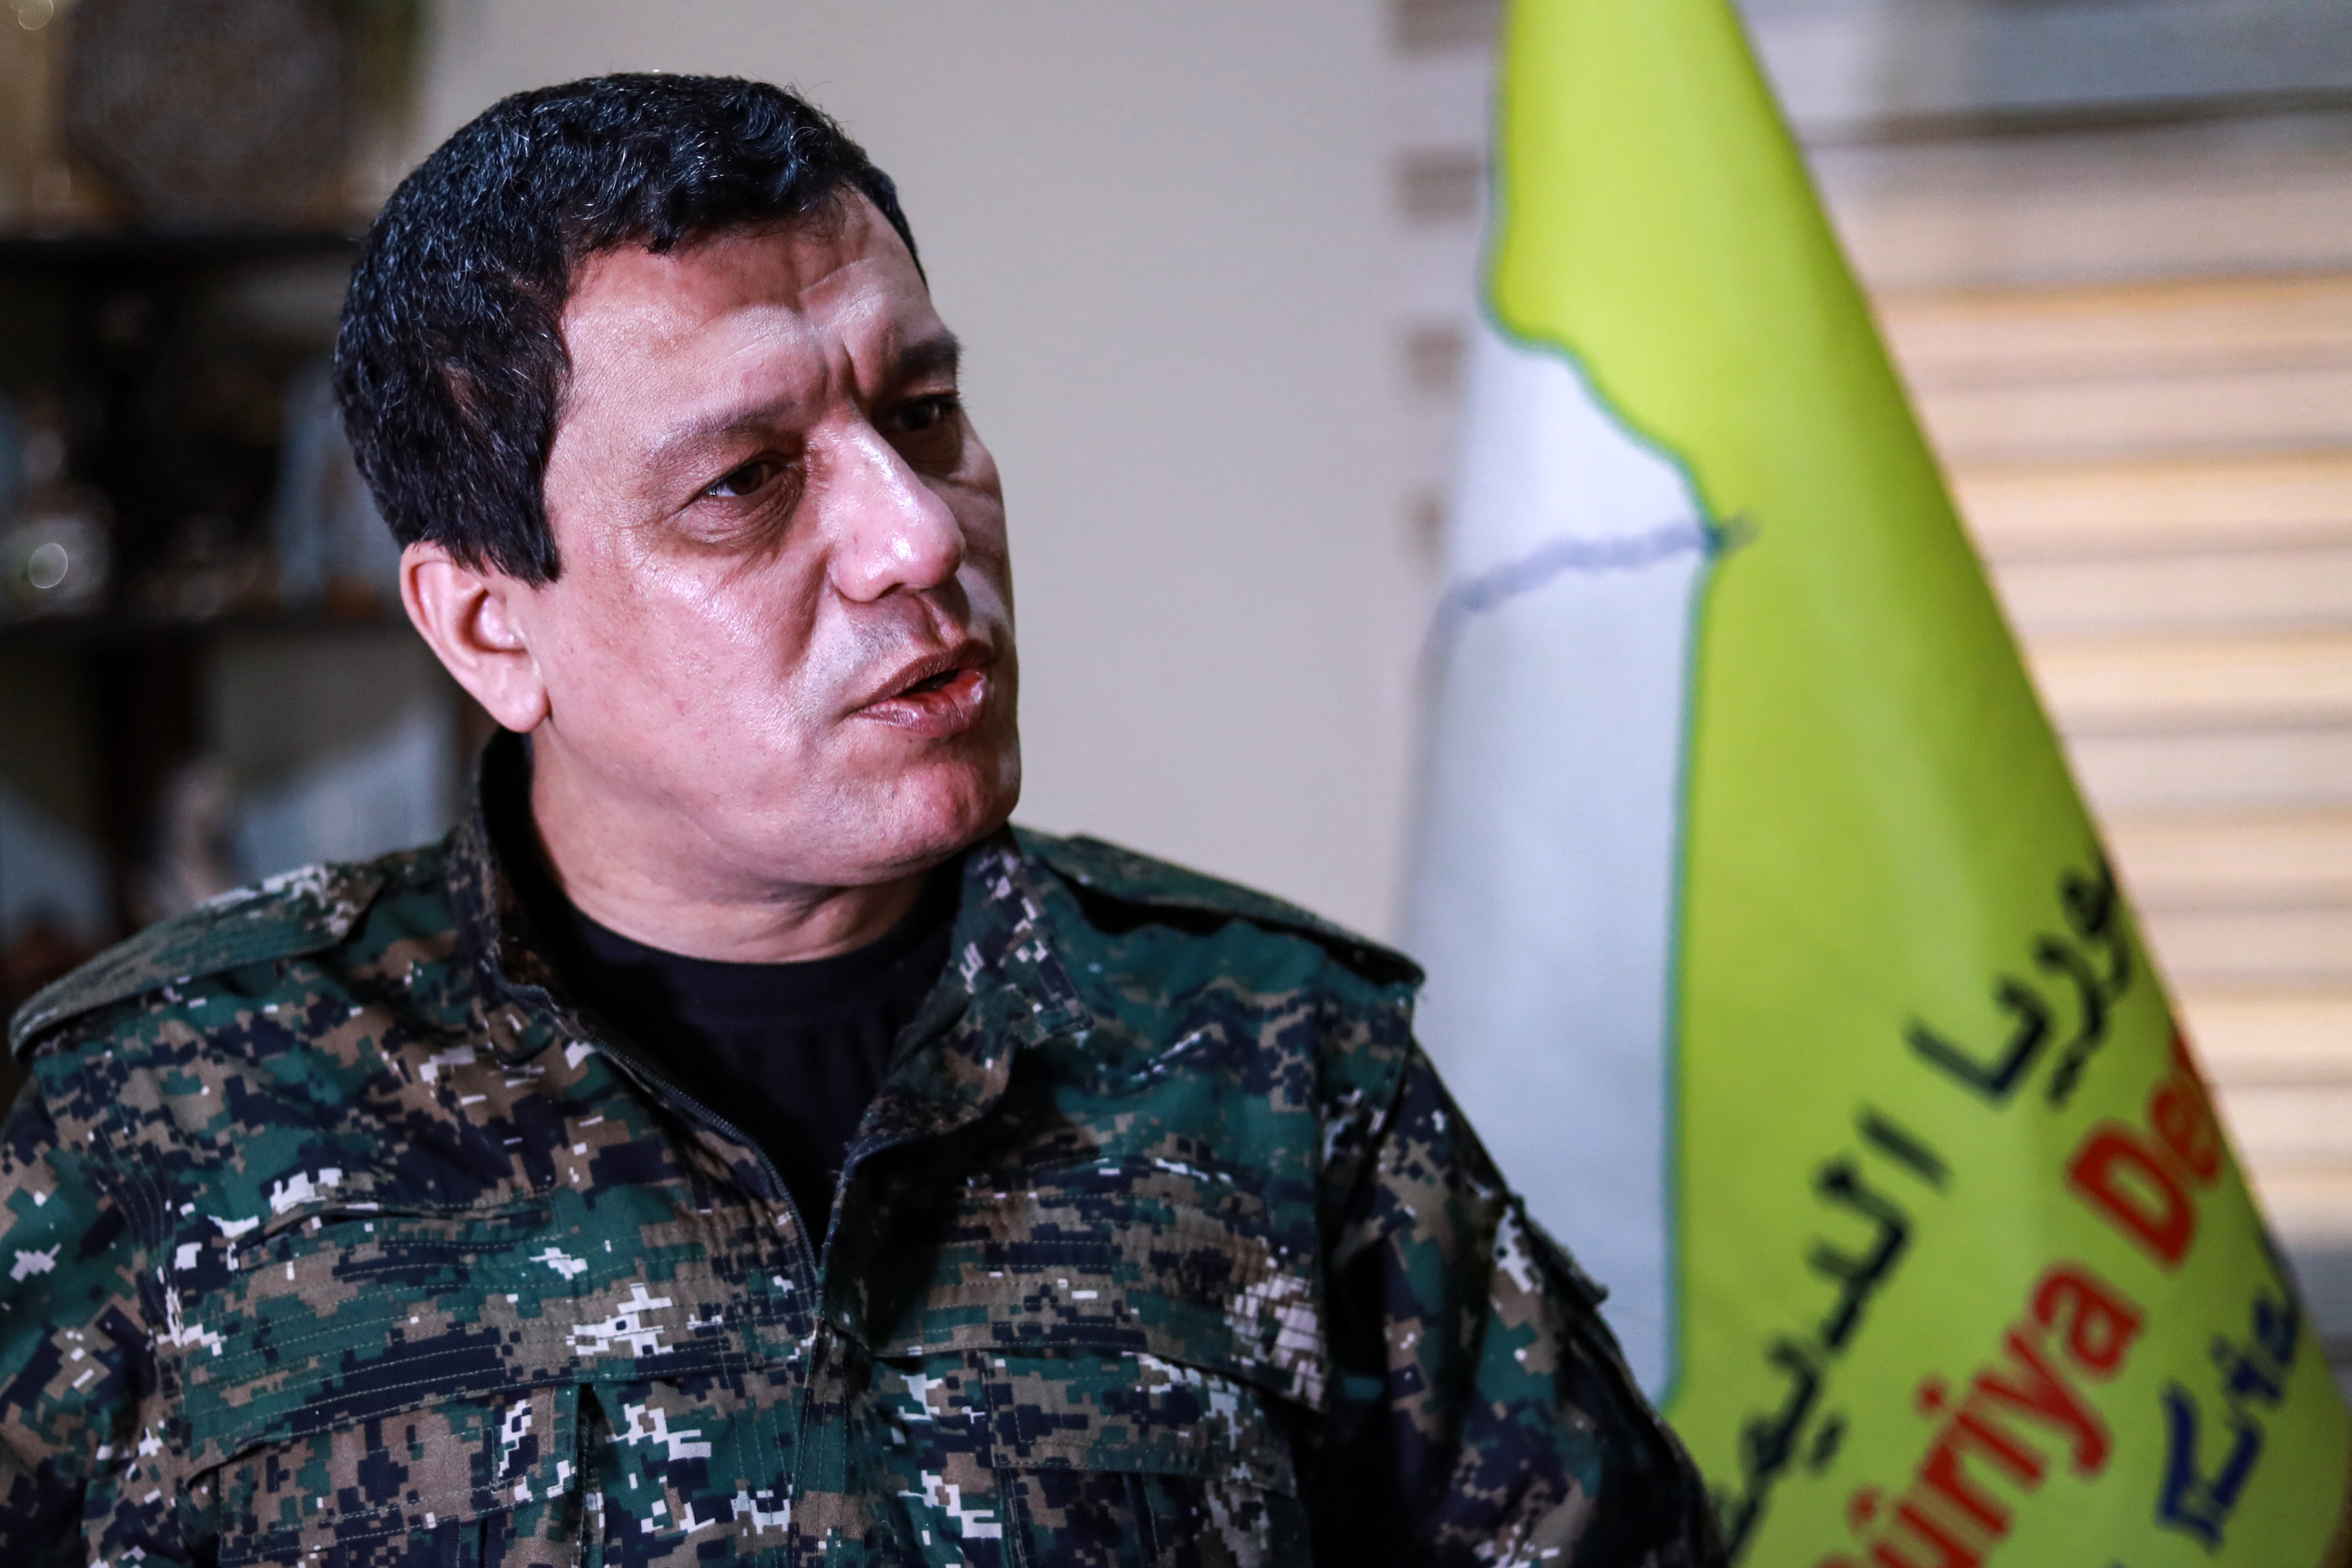 FILE - Mazloum Kobani, commander-in-chief of the Syrian Democratic Forces (SDF), speaks during an interview in the countryside outside the northwestern Syrian city of Hasakah, in a province of the same name, Jan. 24, 2019.